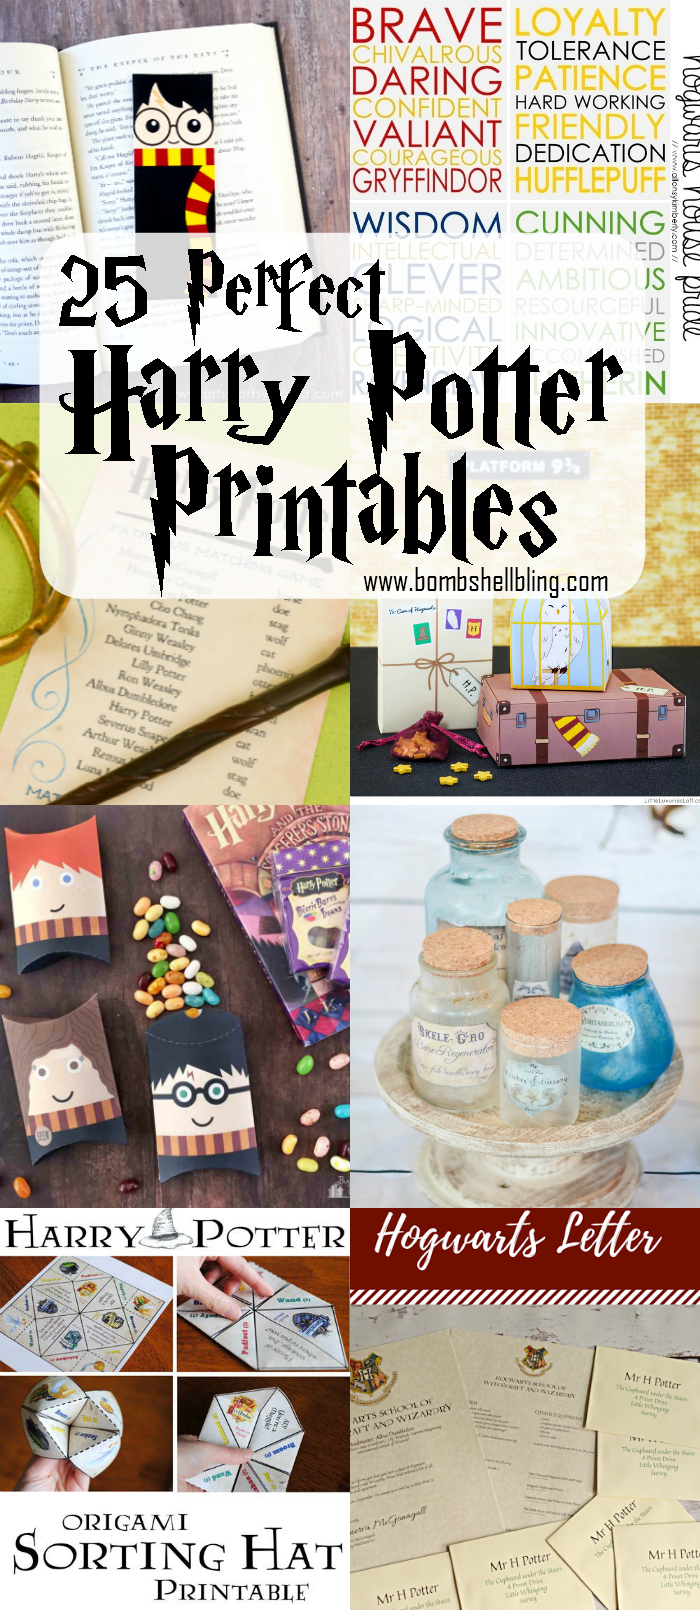 picture relating to Printable Harry Potter identify 25 Great Harry Potter Printables - Gathered through Bombs